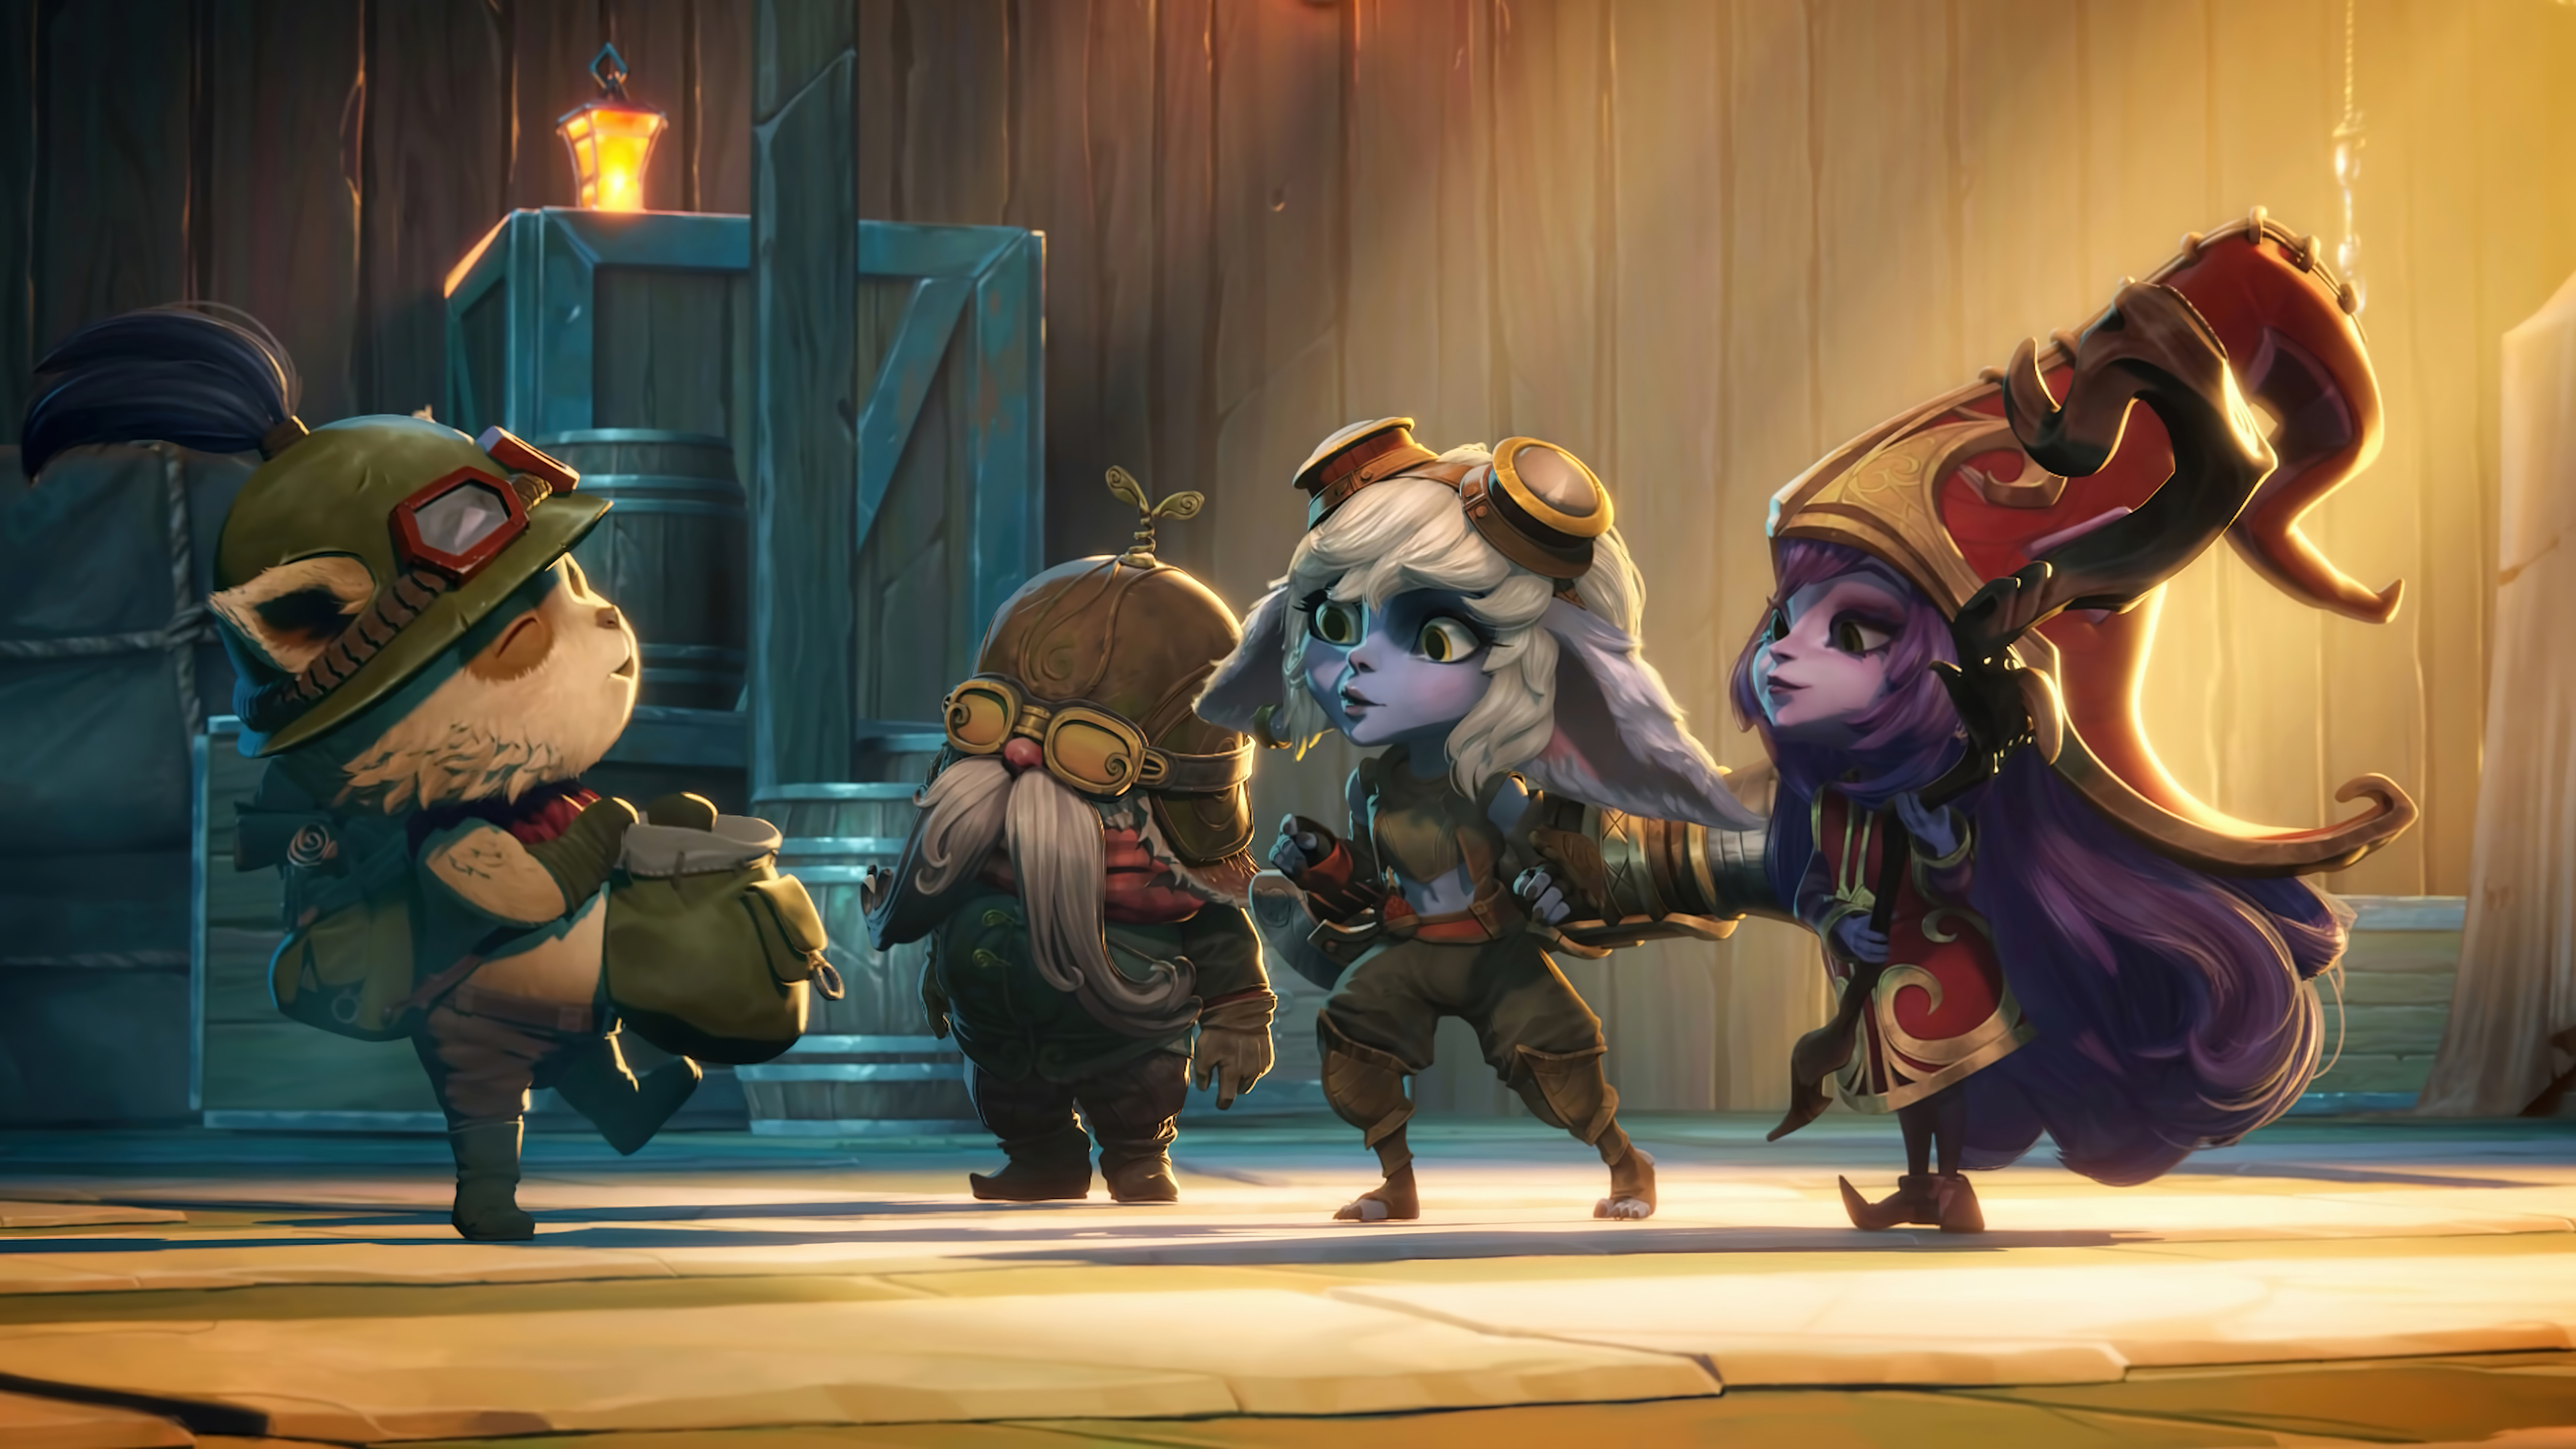 Wallpaper Teemo, Corki, Tristana and Lulu from League of Legends